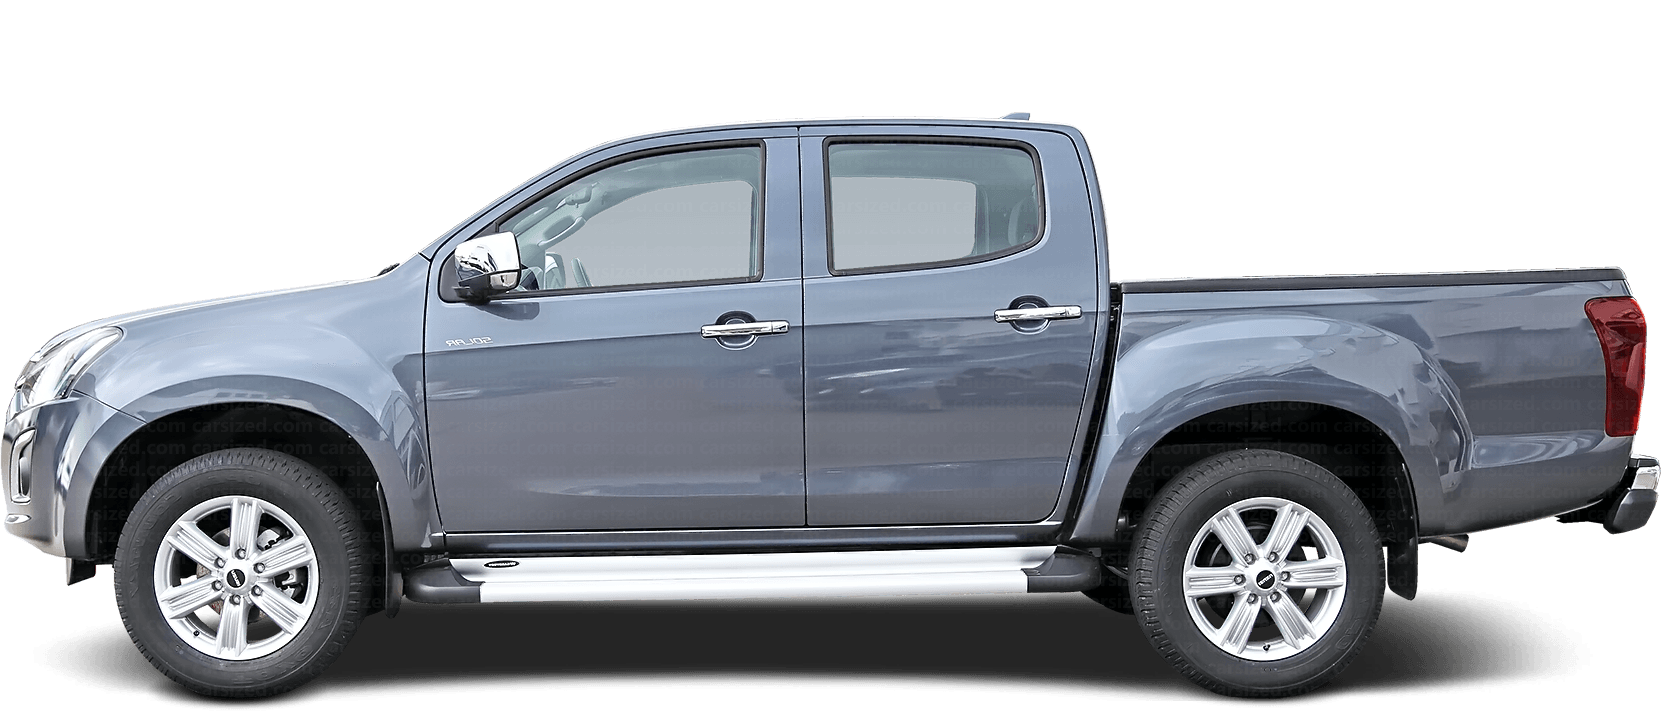 Isuzu D-Max Pick-up 2012-present Side View